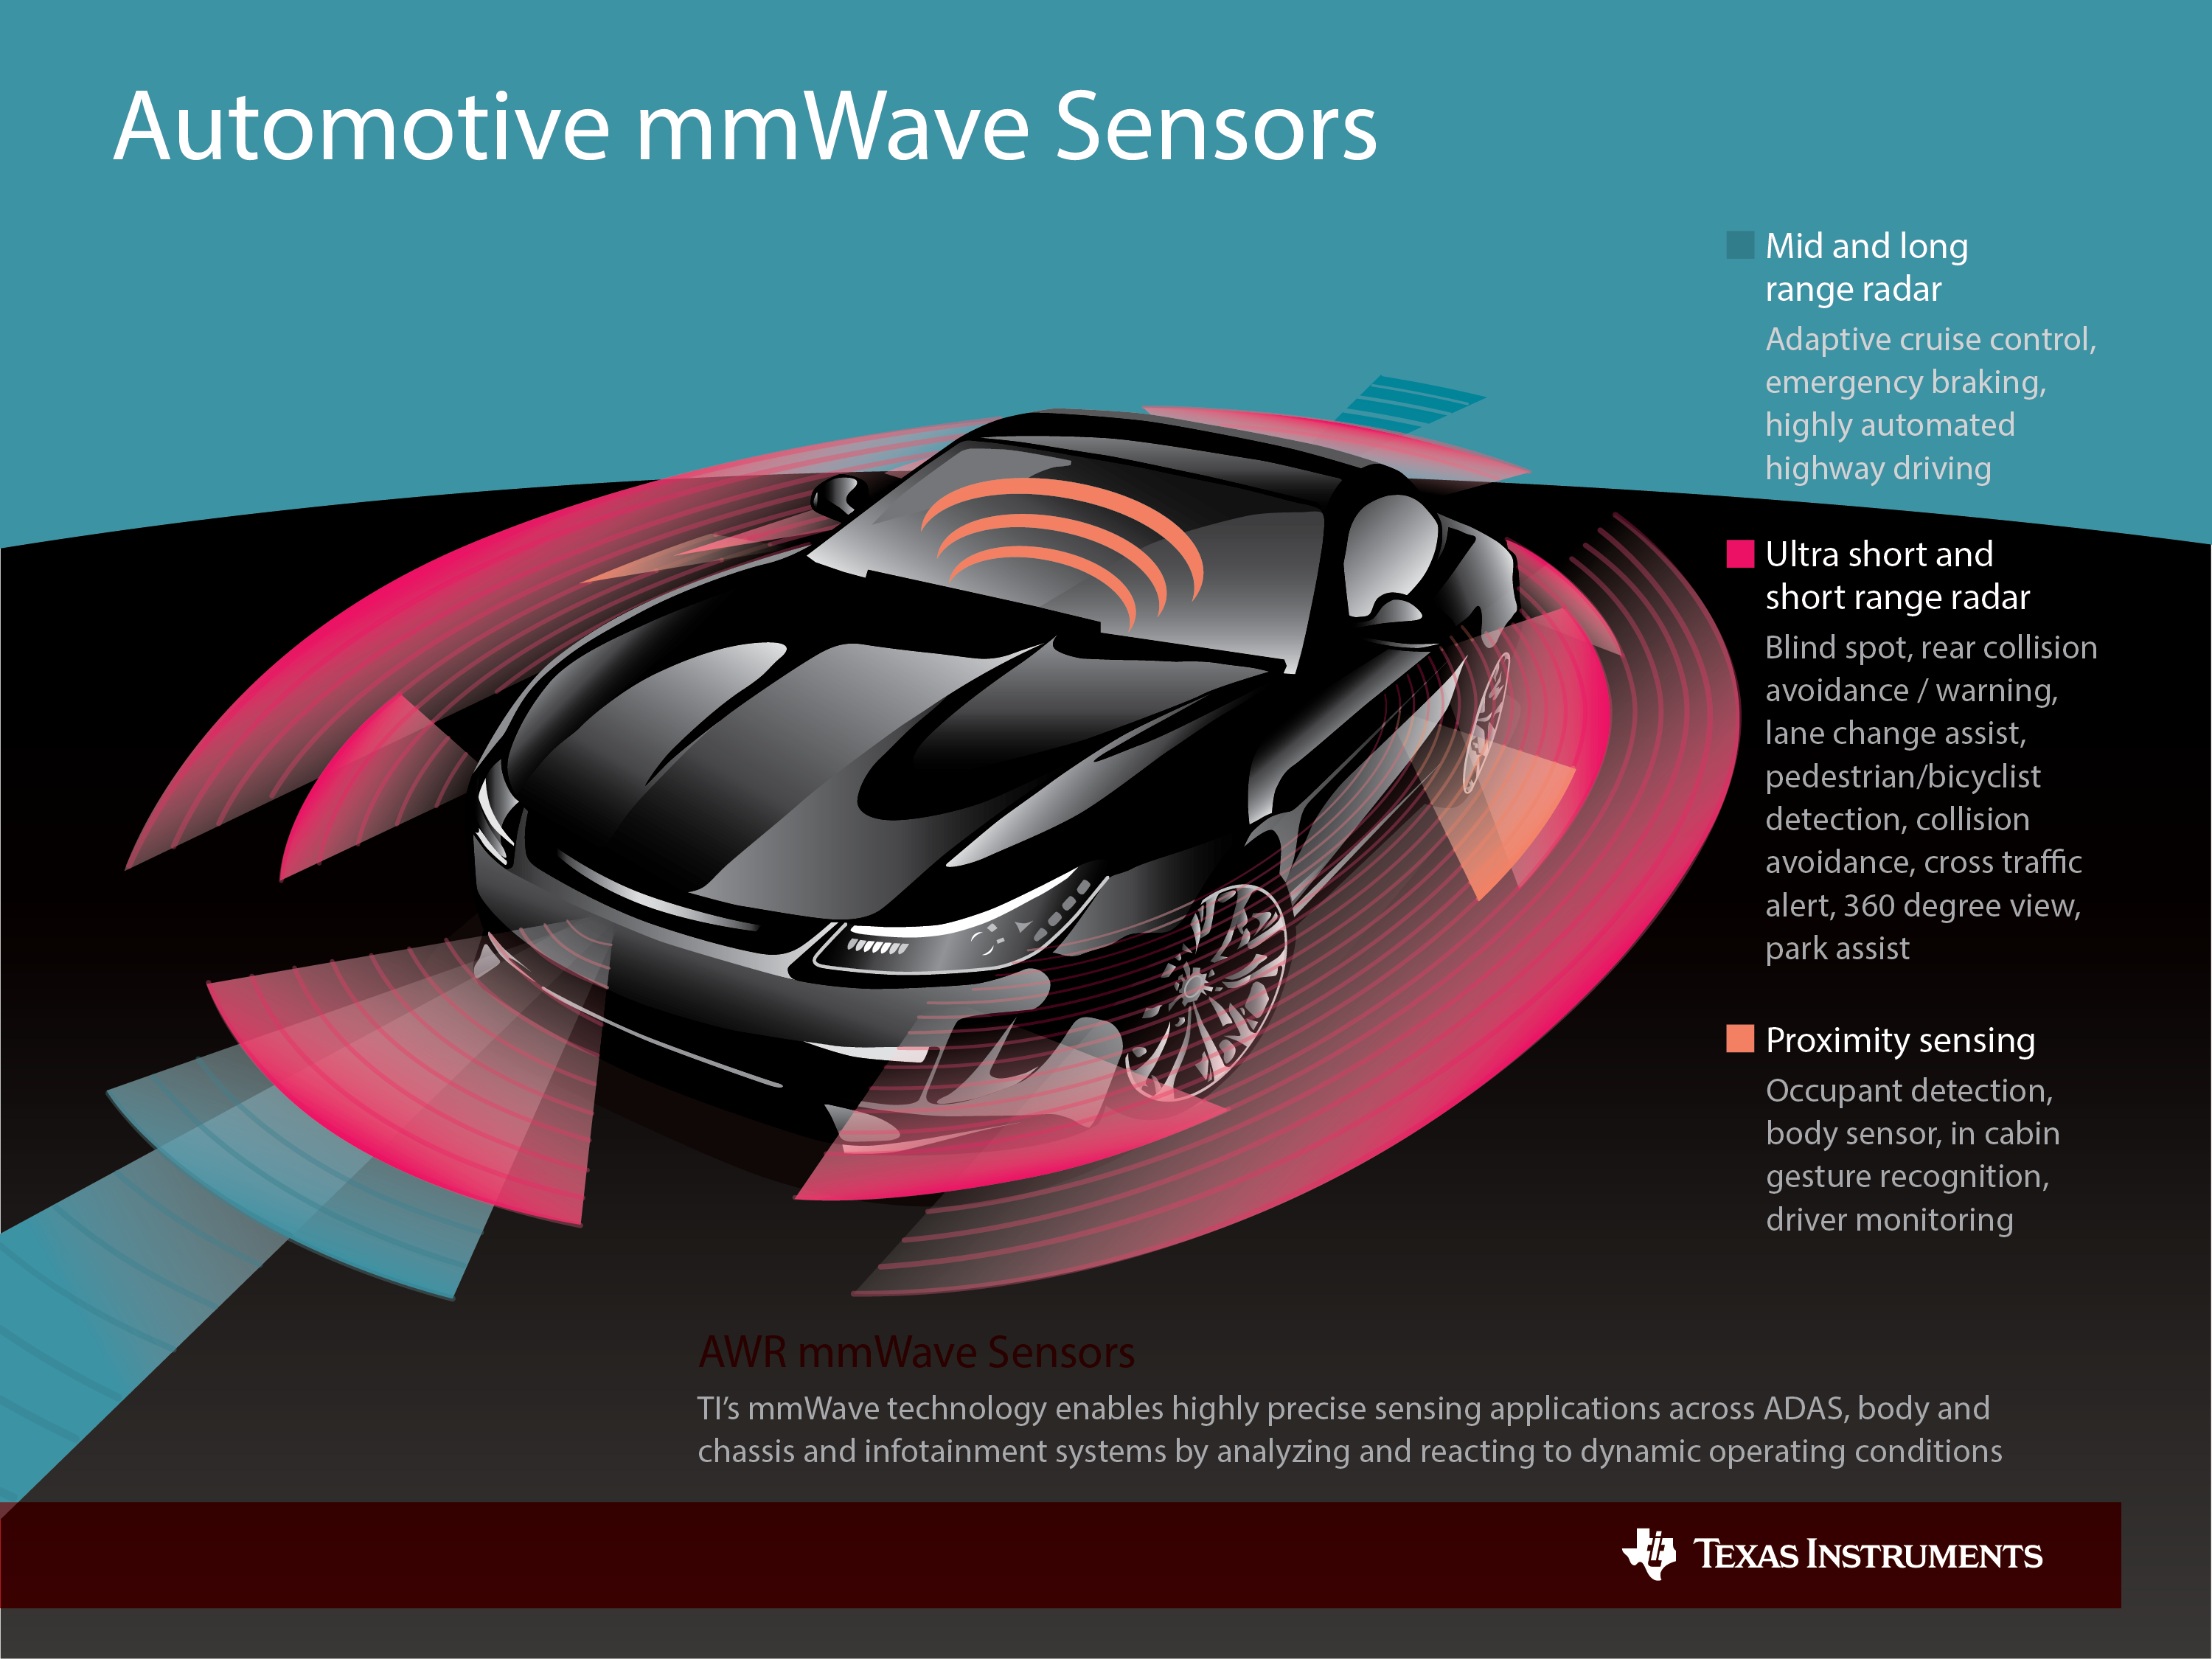 Why Are Automotive Radar Systems Moving From 24ghz To